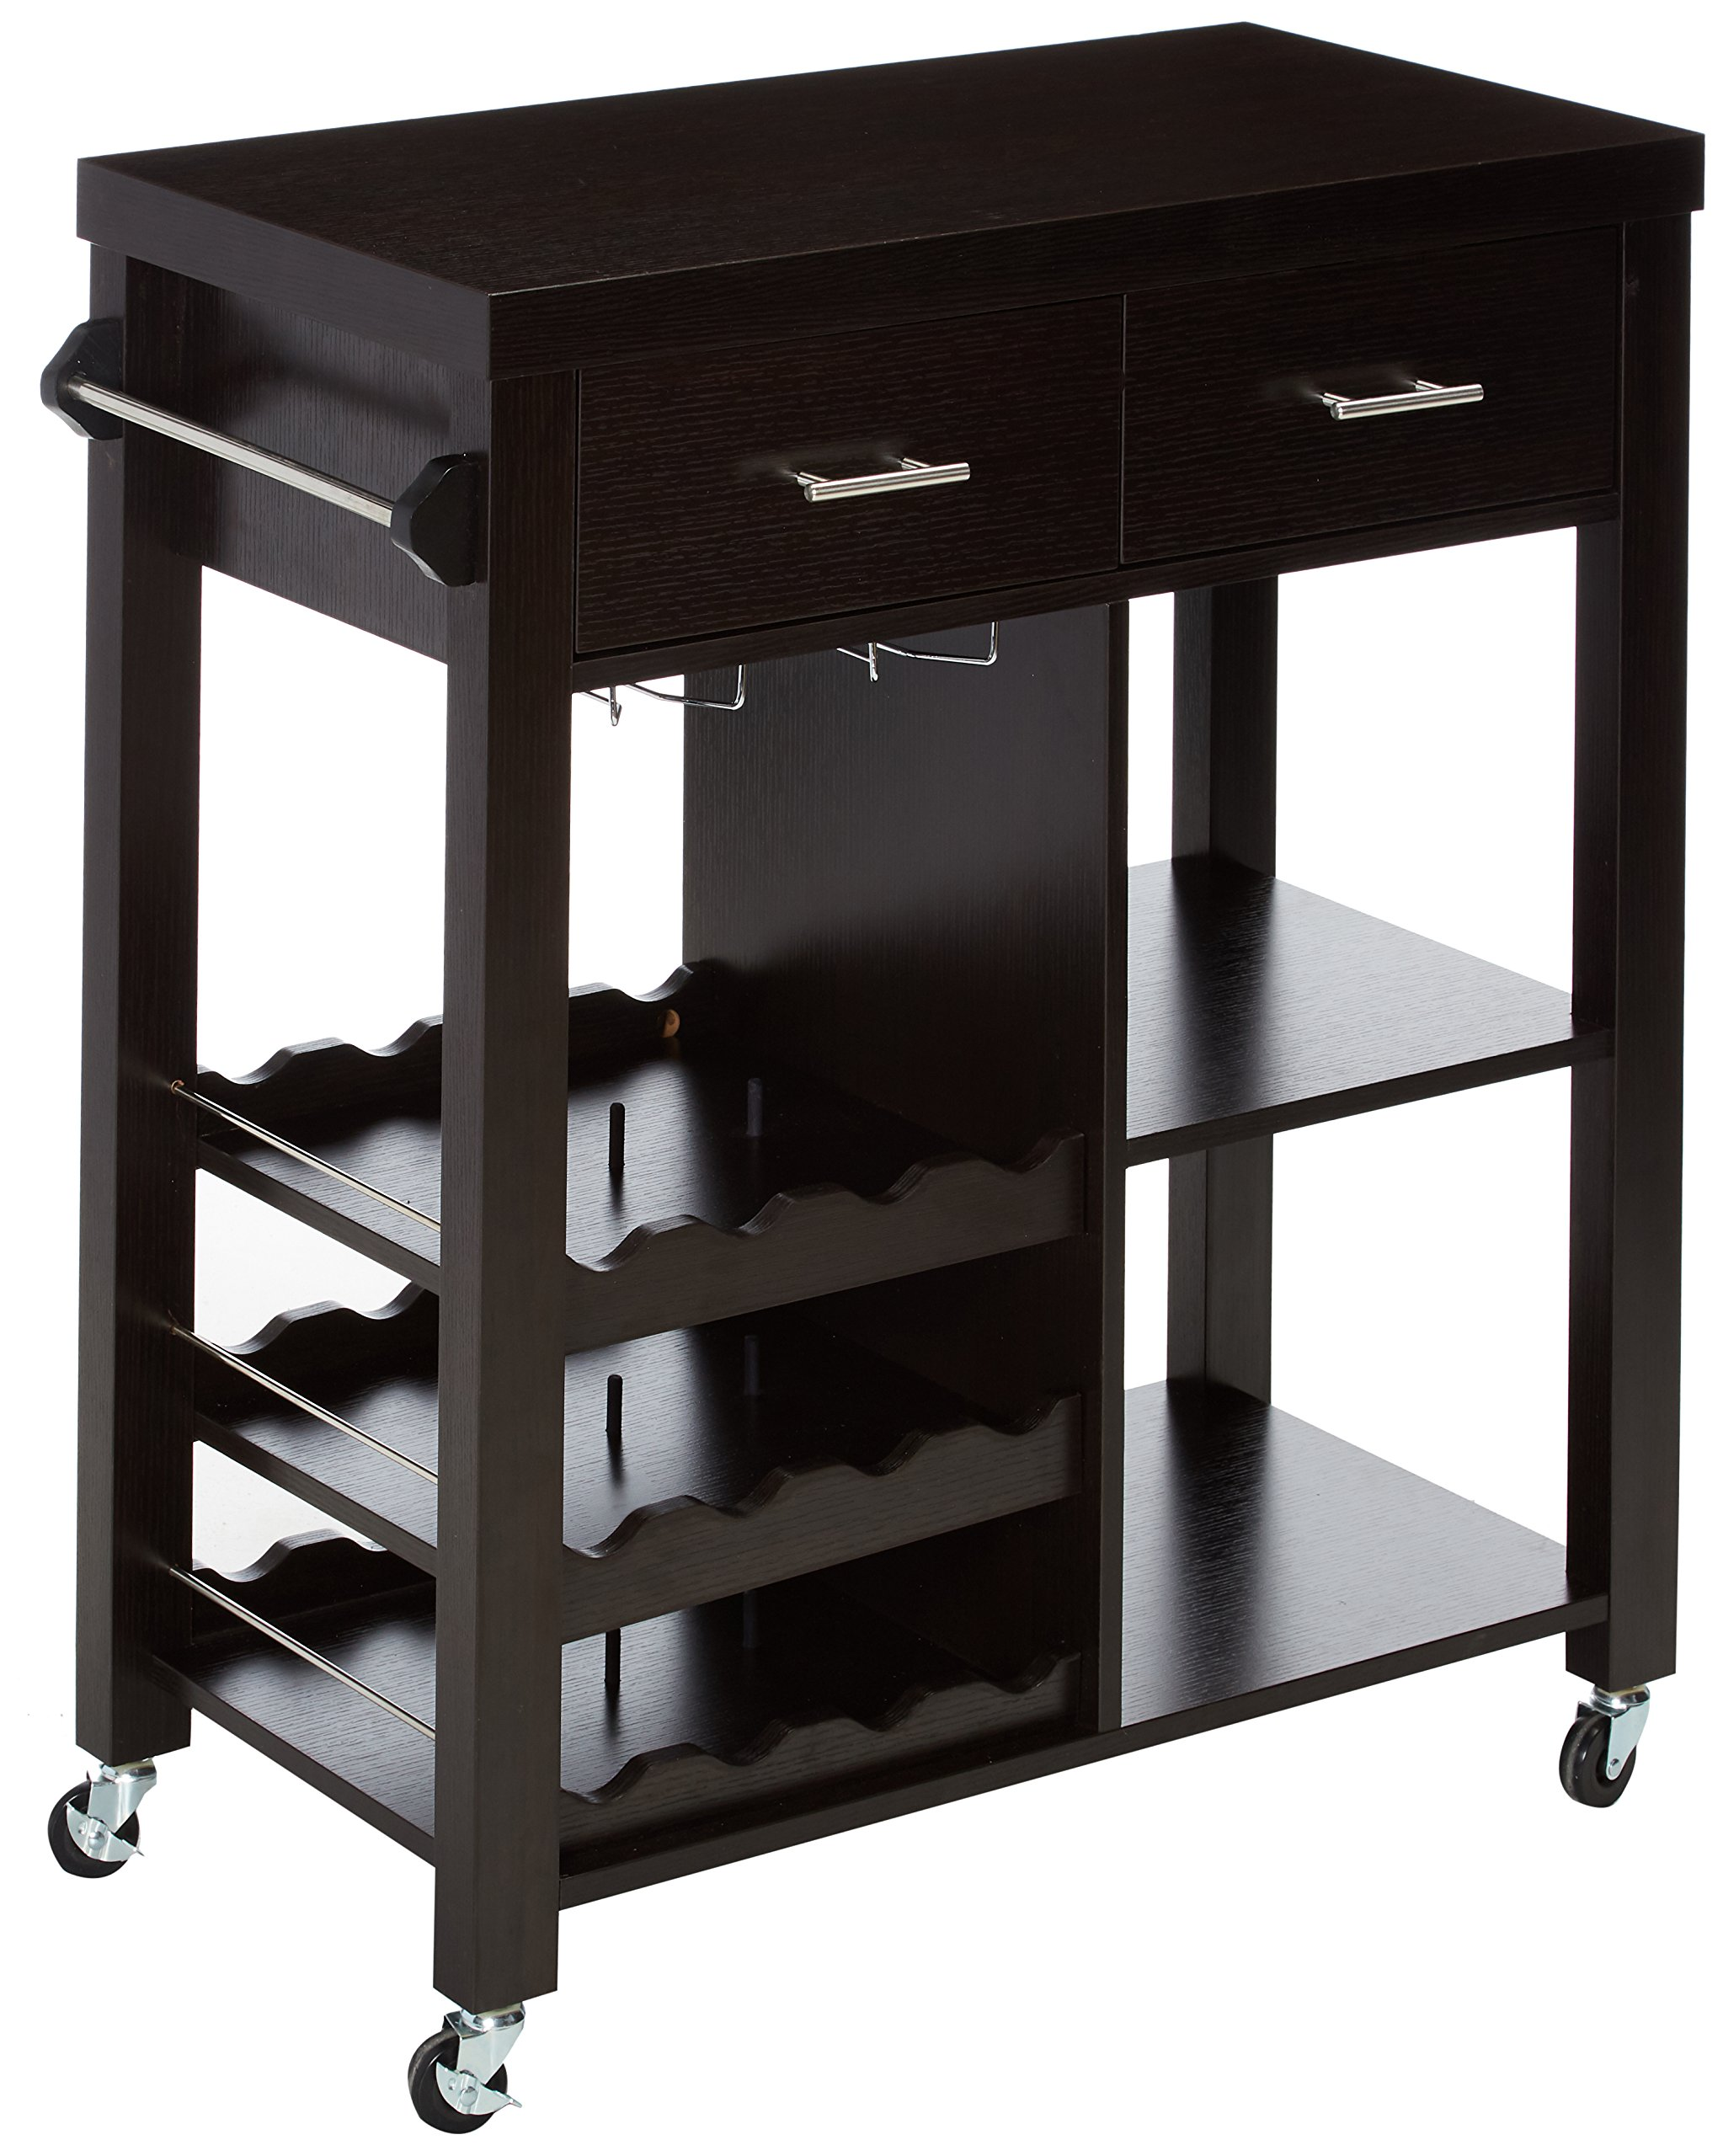 247SHOPATHOME Valentino Kitchen cart, brown by 24/7 Shop at Home